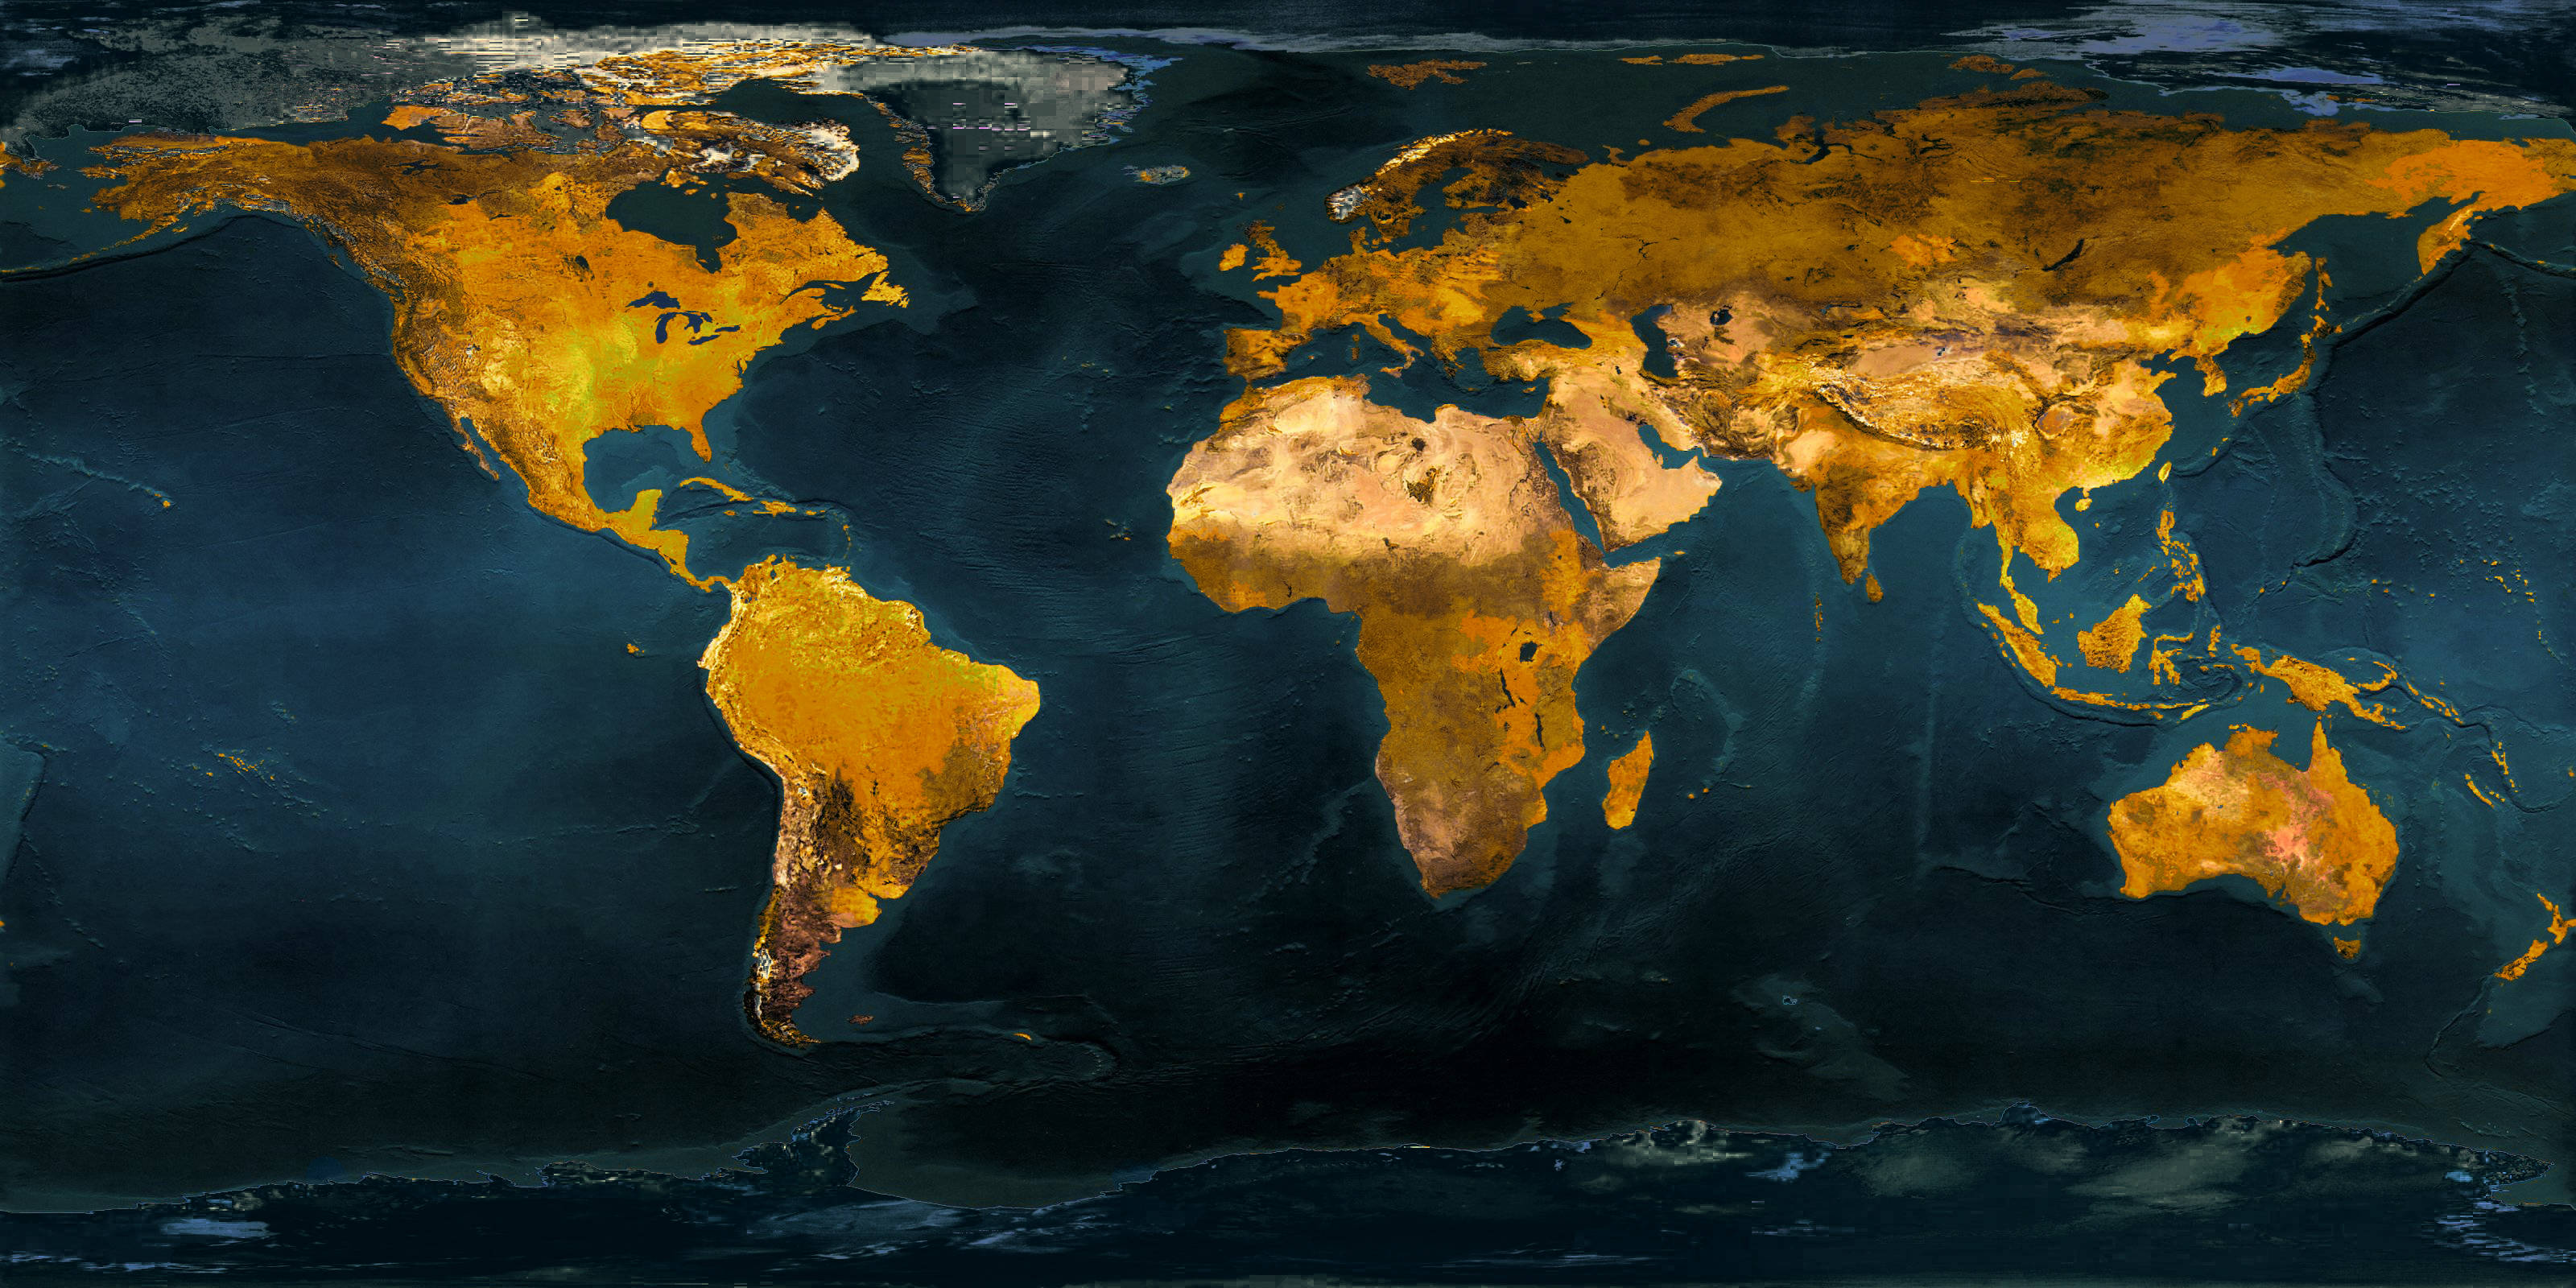 World Map Wallpapers Artsy Wallpapers Pictures Free Download: World Map Wallpaper High Resolution